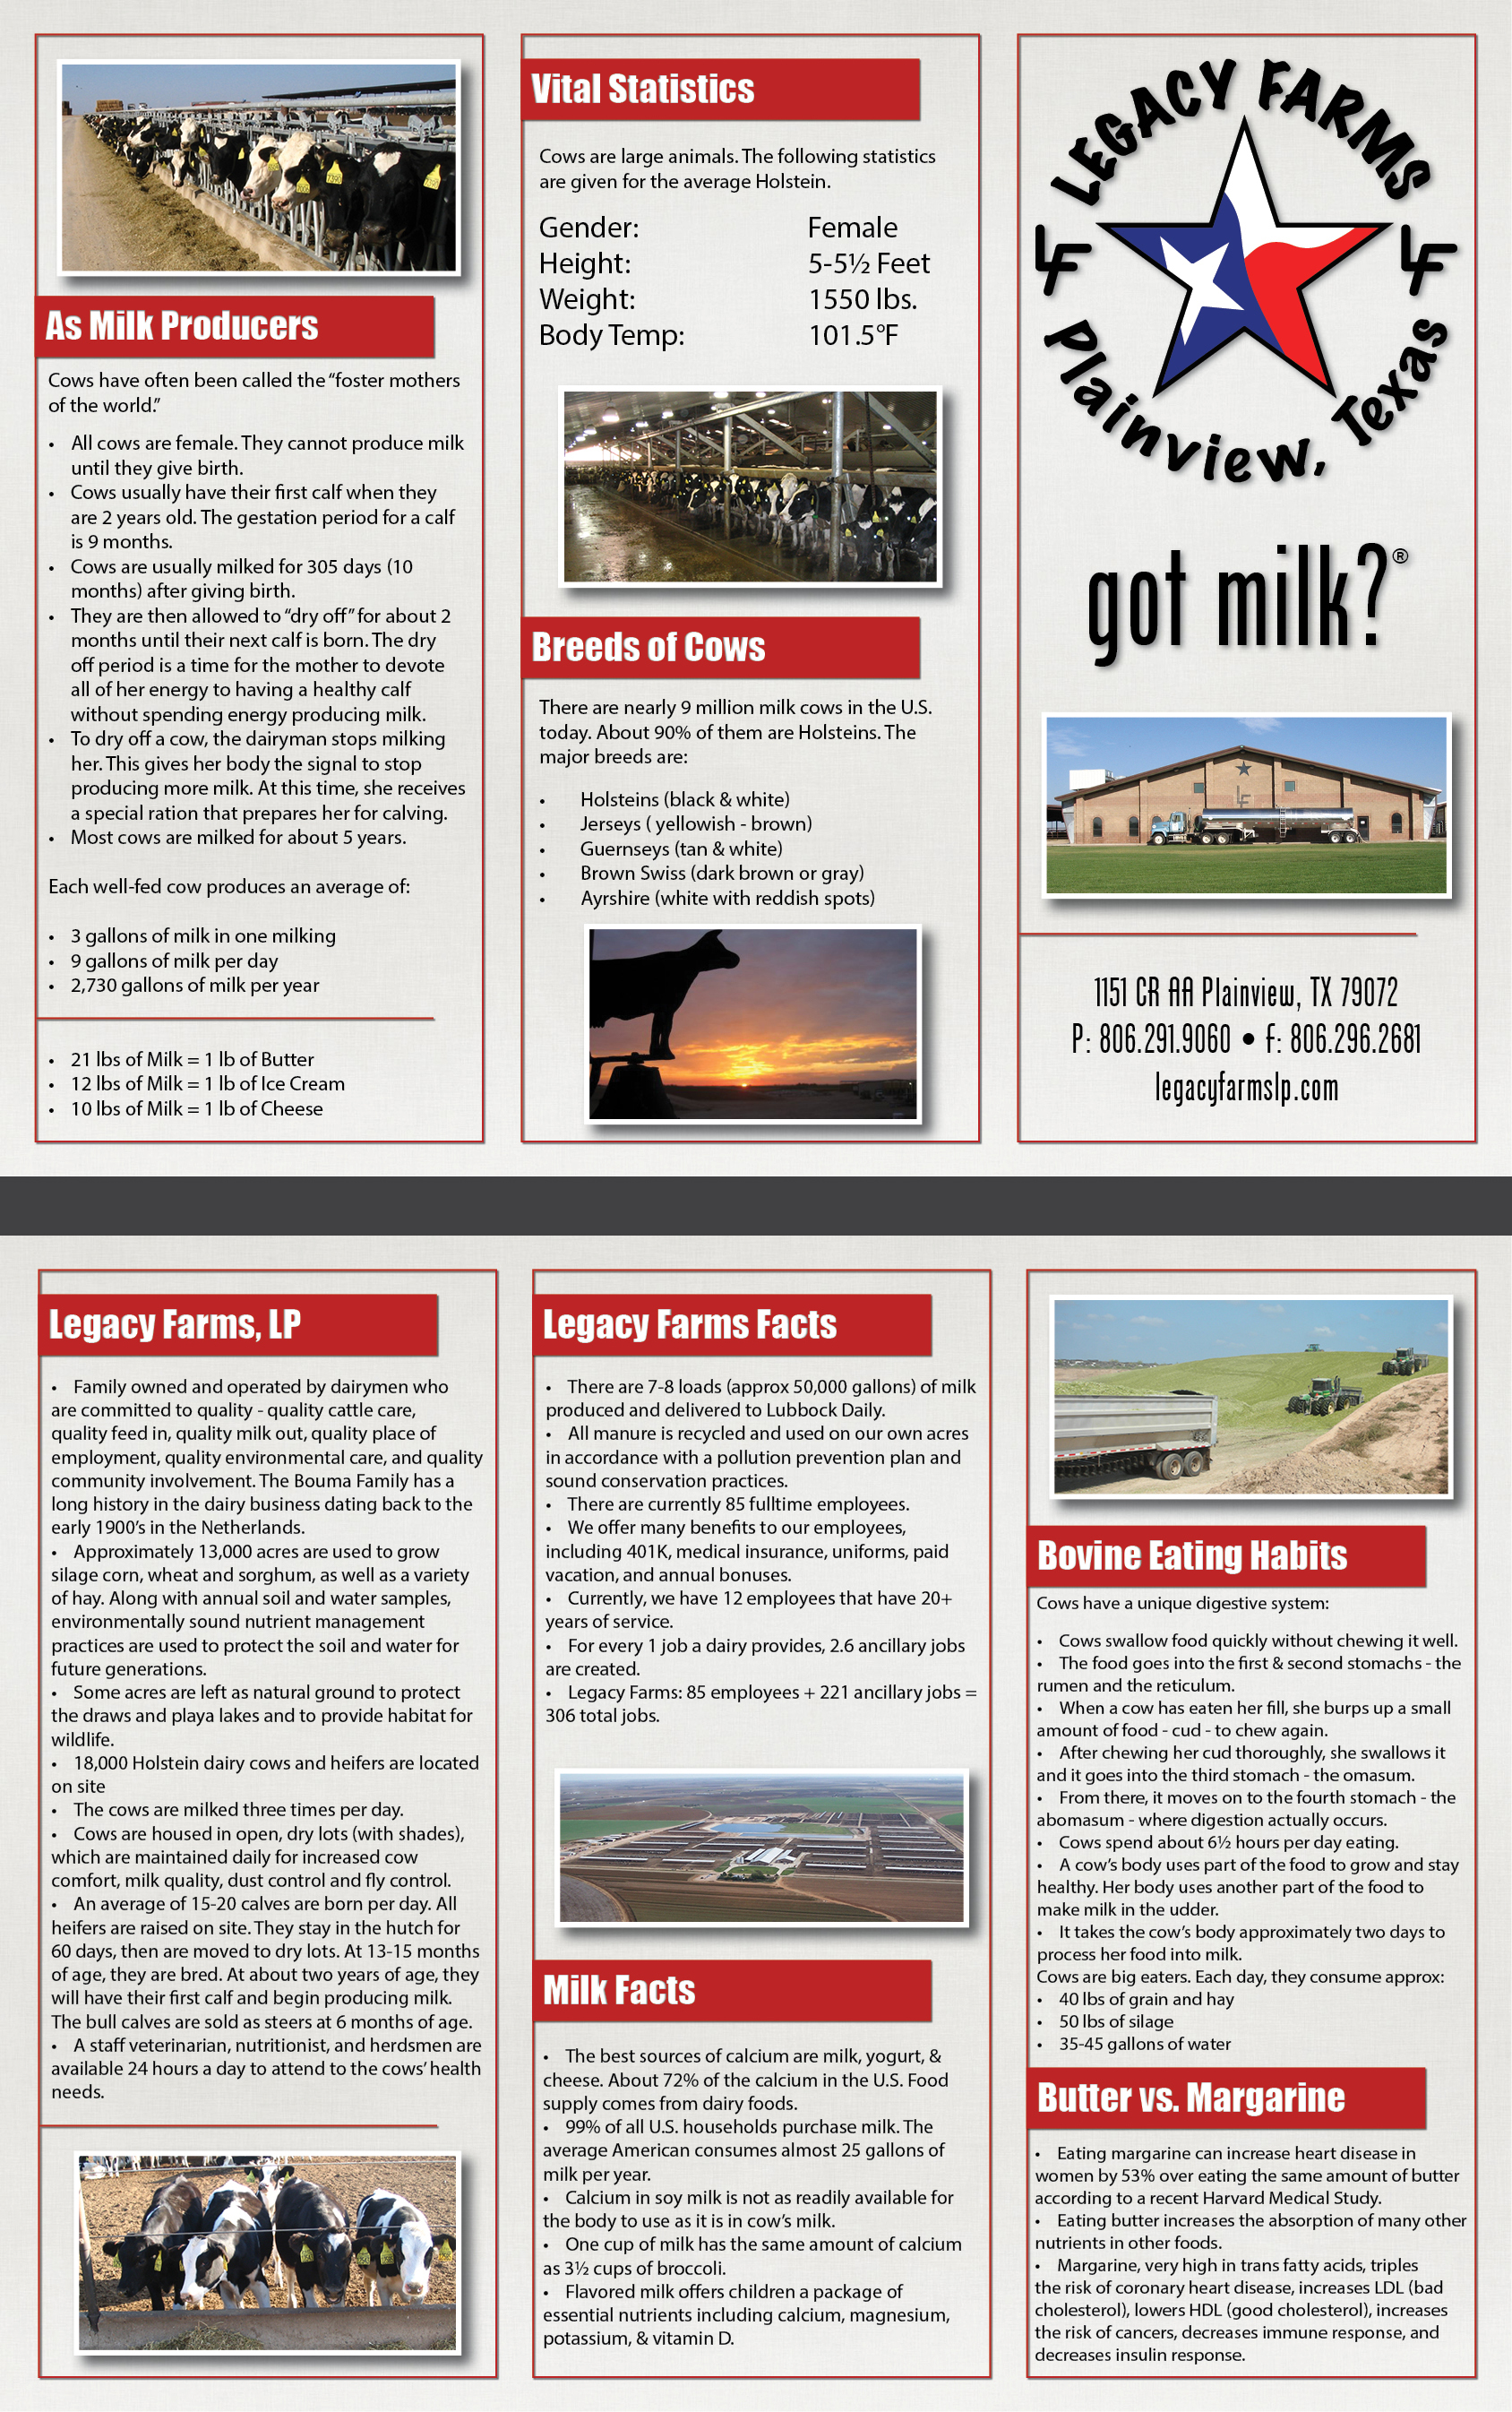 Legacy Farms Brochure.jpg